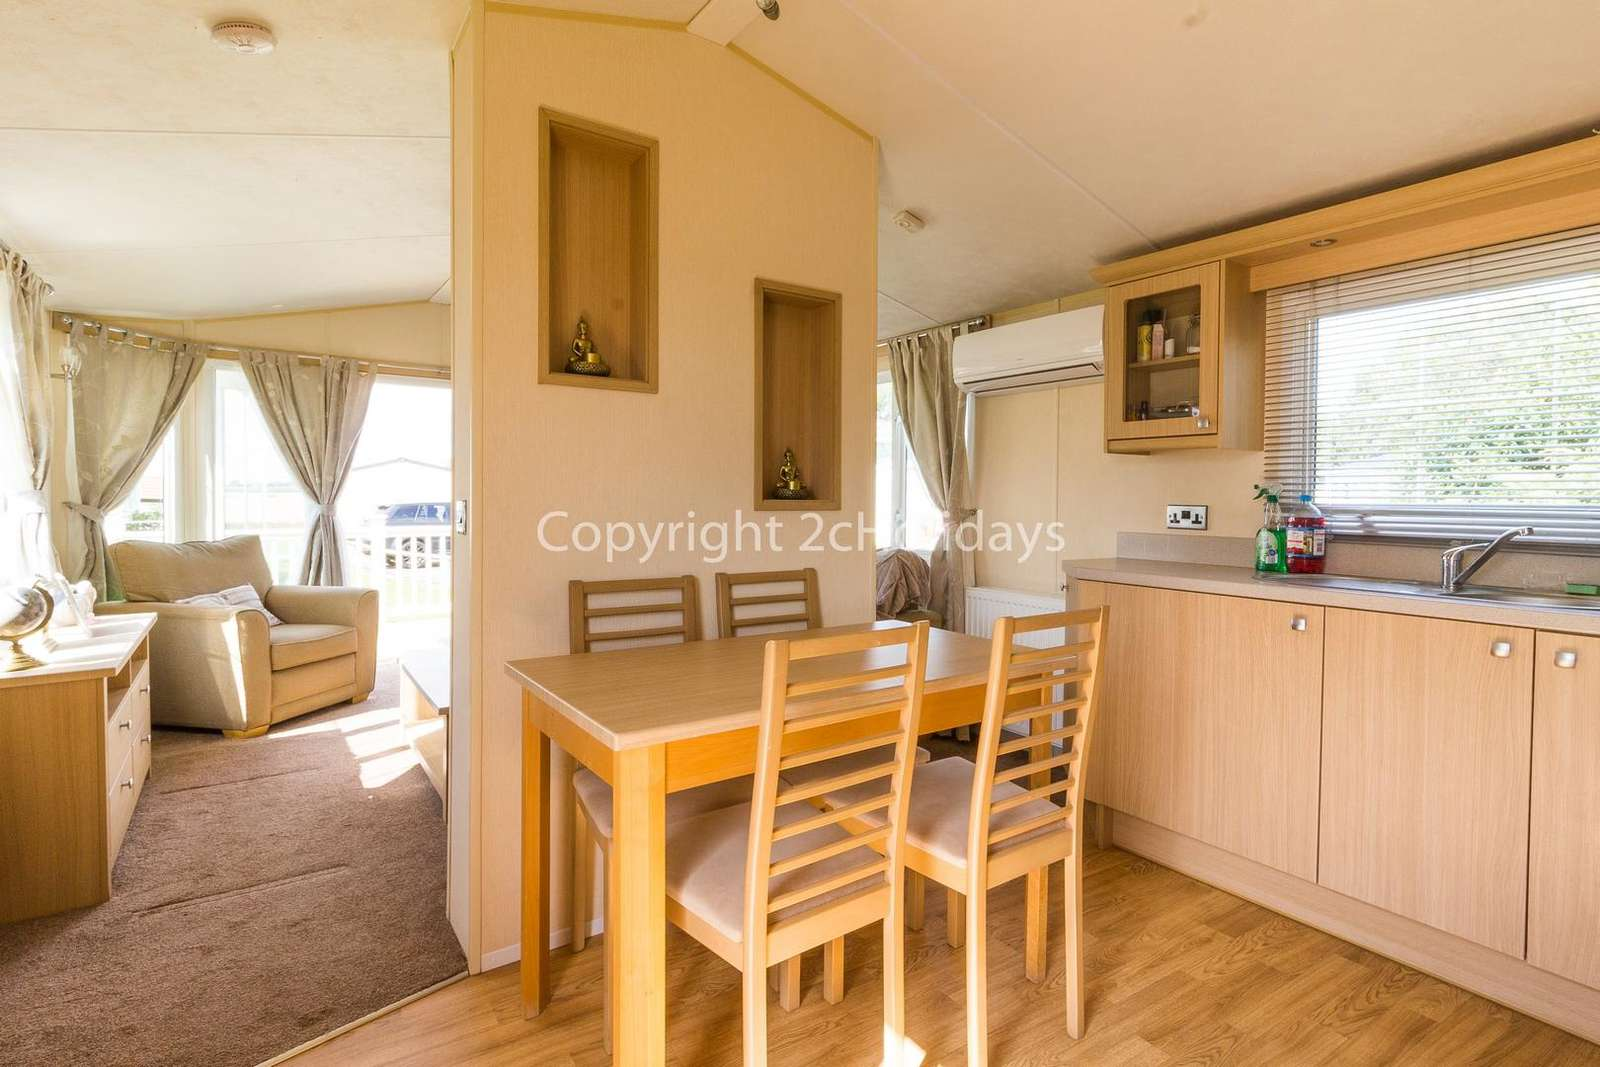 Open plan kitchen/dining area, great for families!